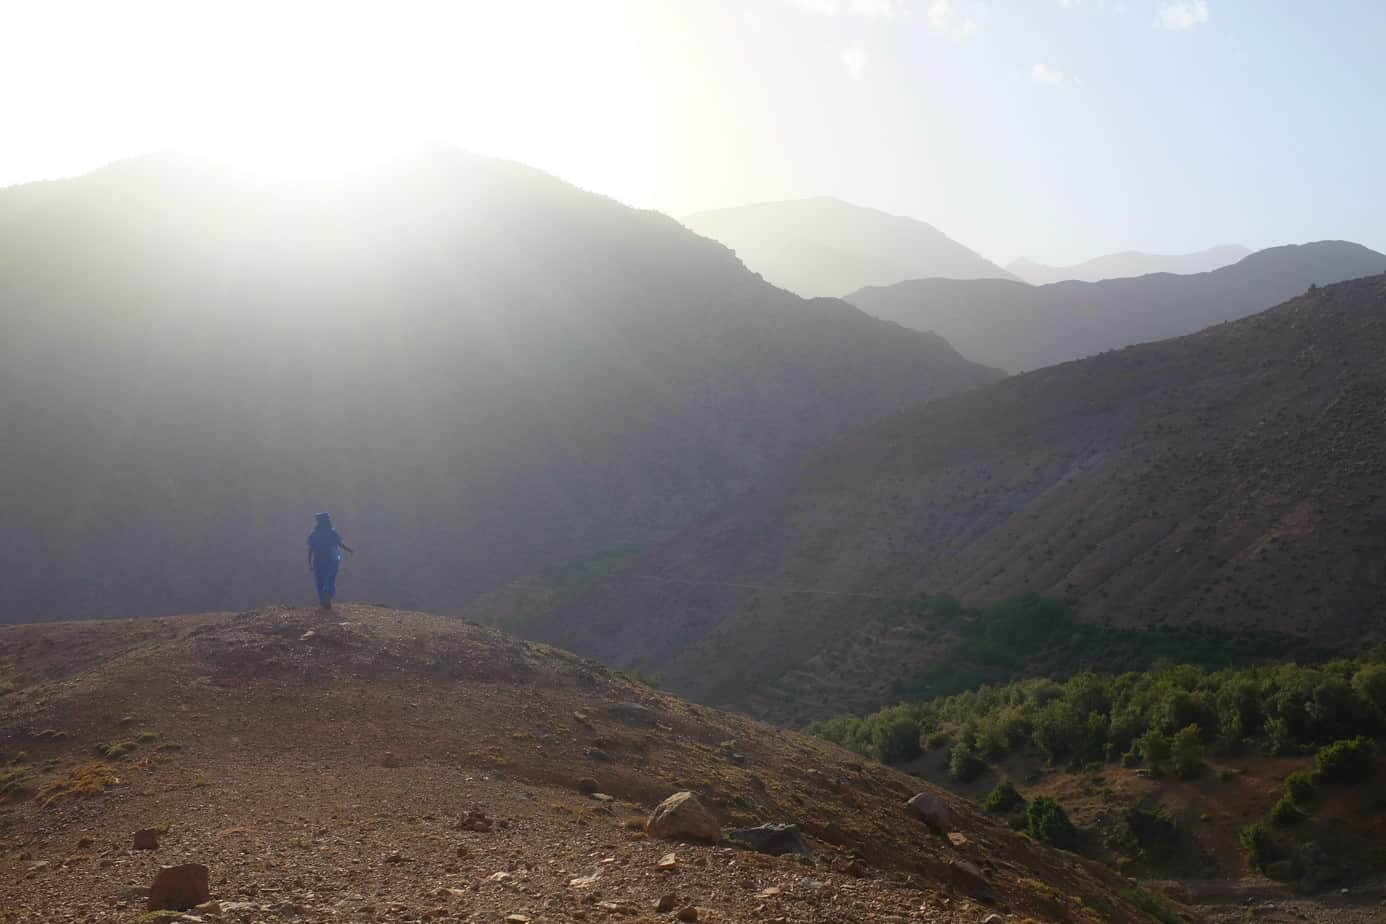 Hiking in Morocco, adventure funding options